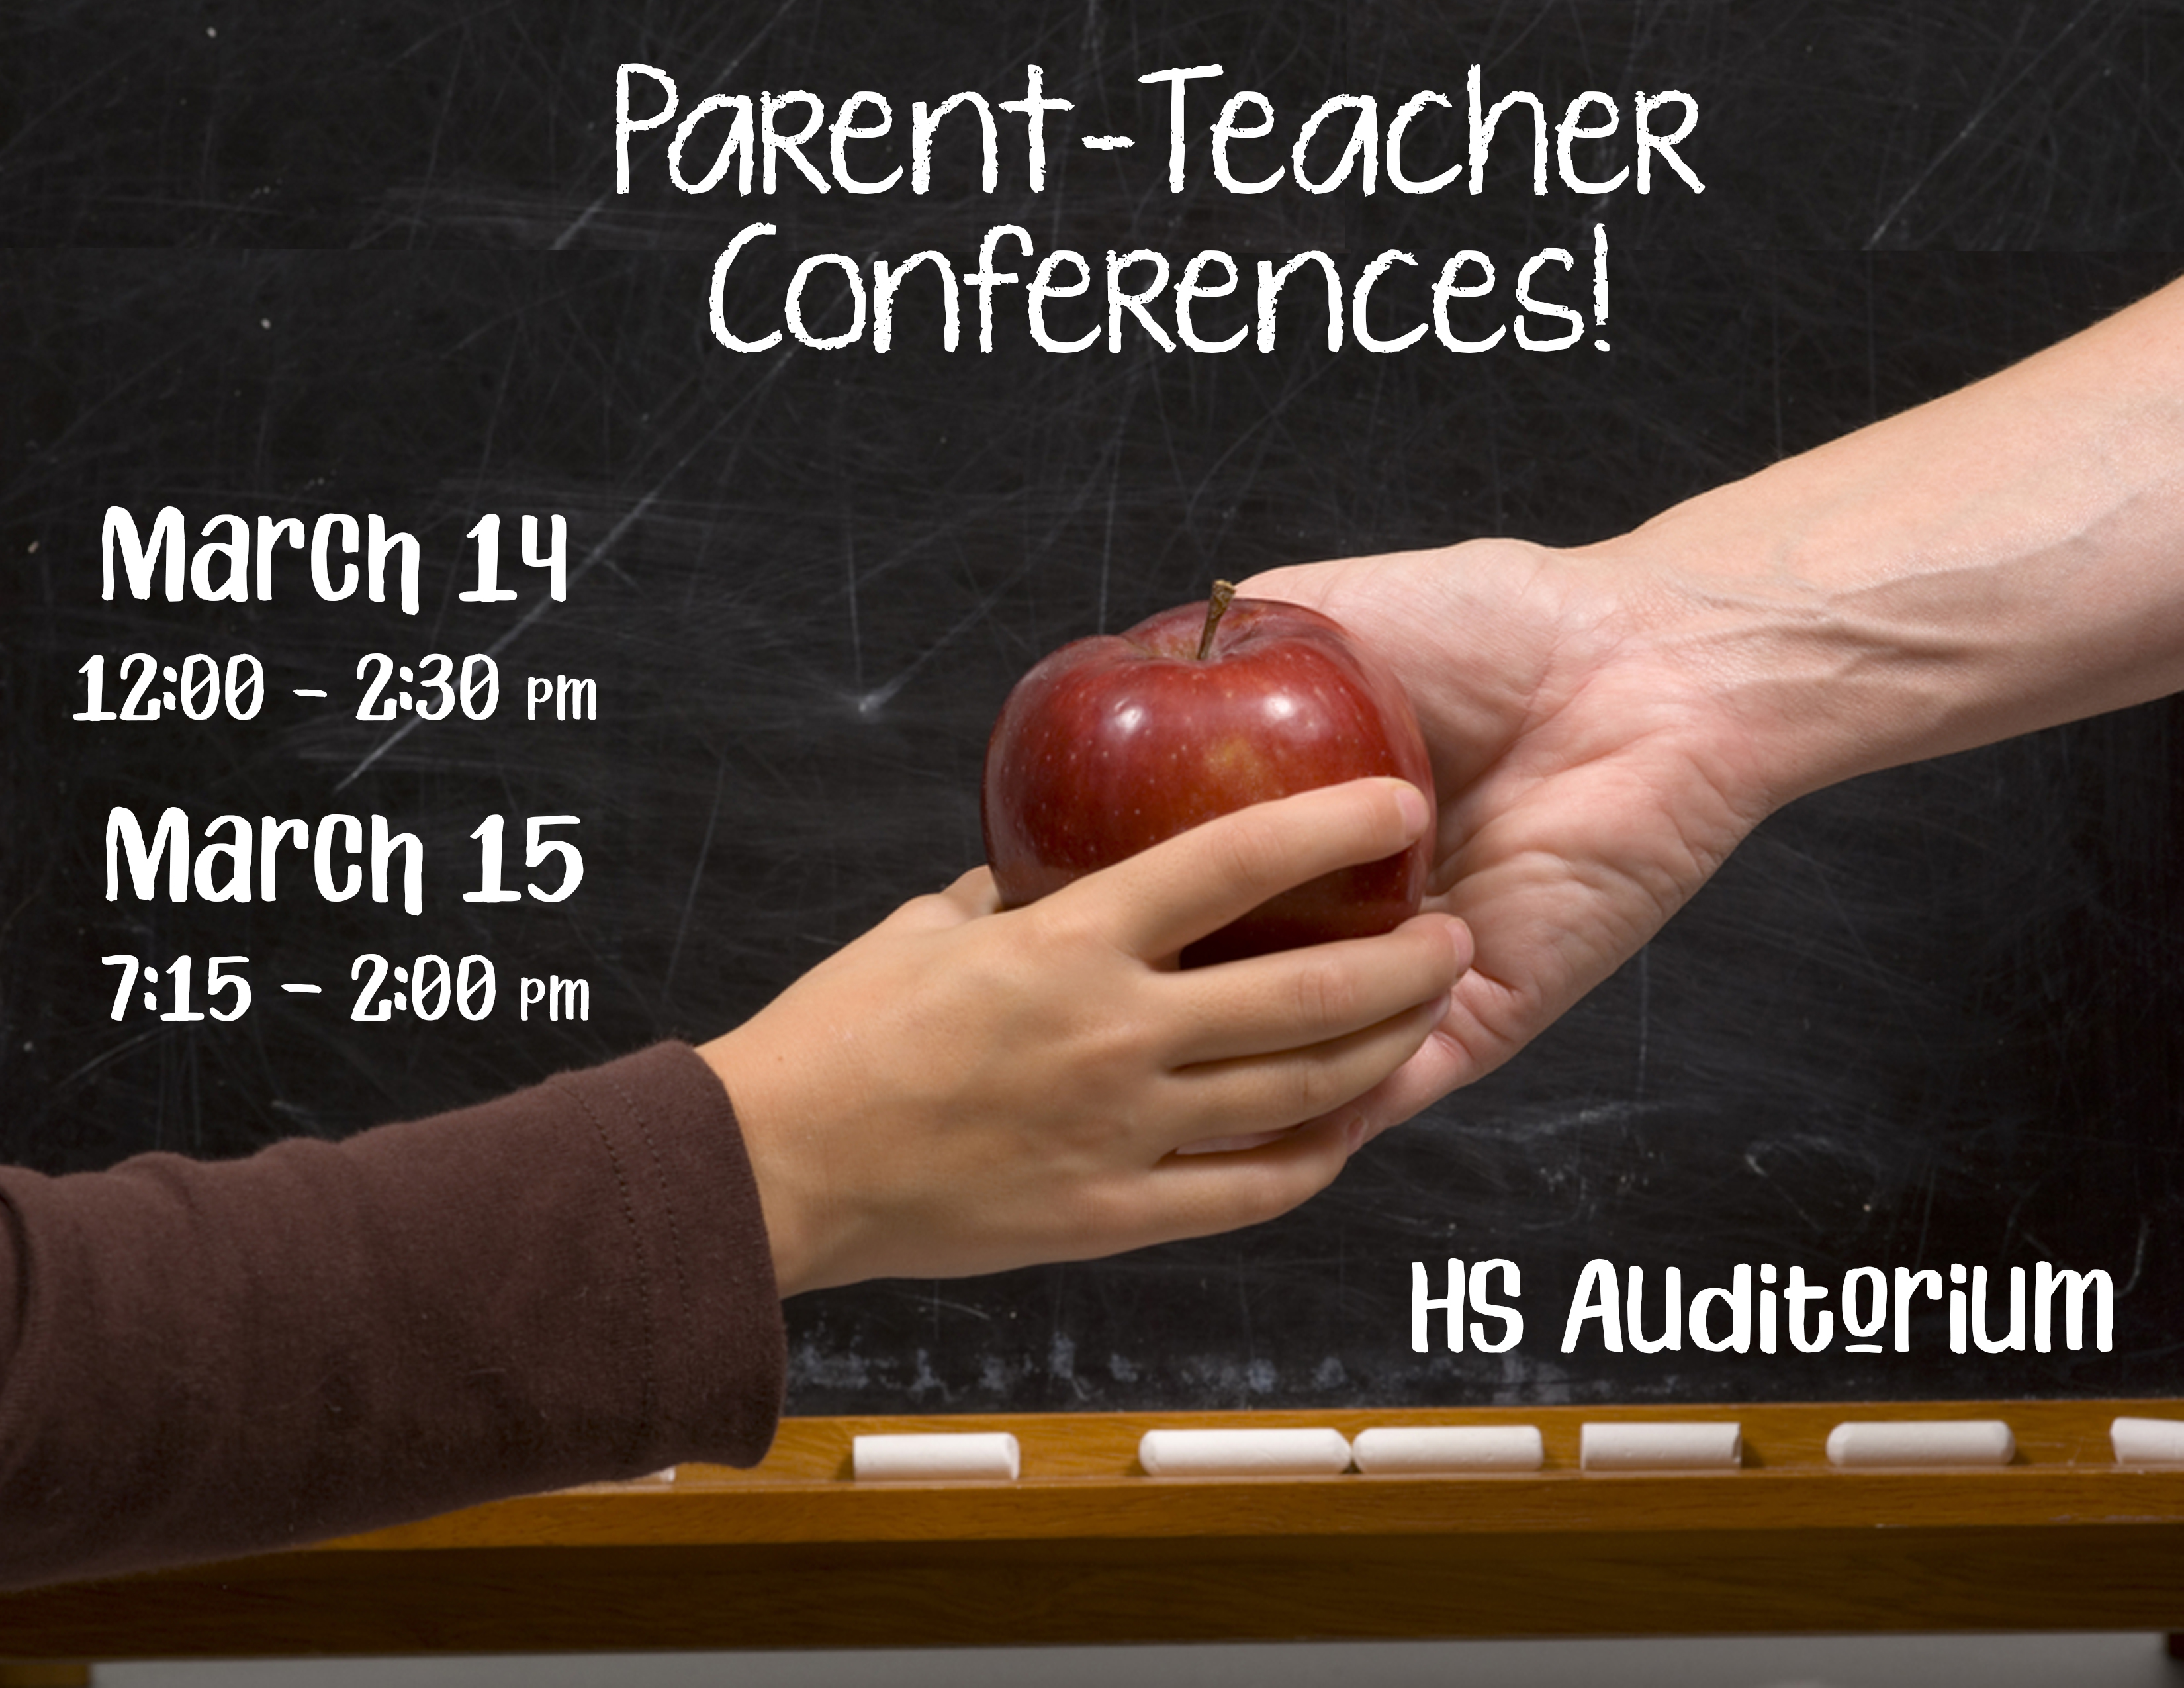 Parentteacher conferences march 14 15 ask high school office blog we invite all high school parents and students to attend the parent teacher conferences which will take place on march 14th 1200 230pm and march 15th altavistaventures Images